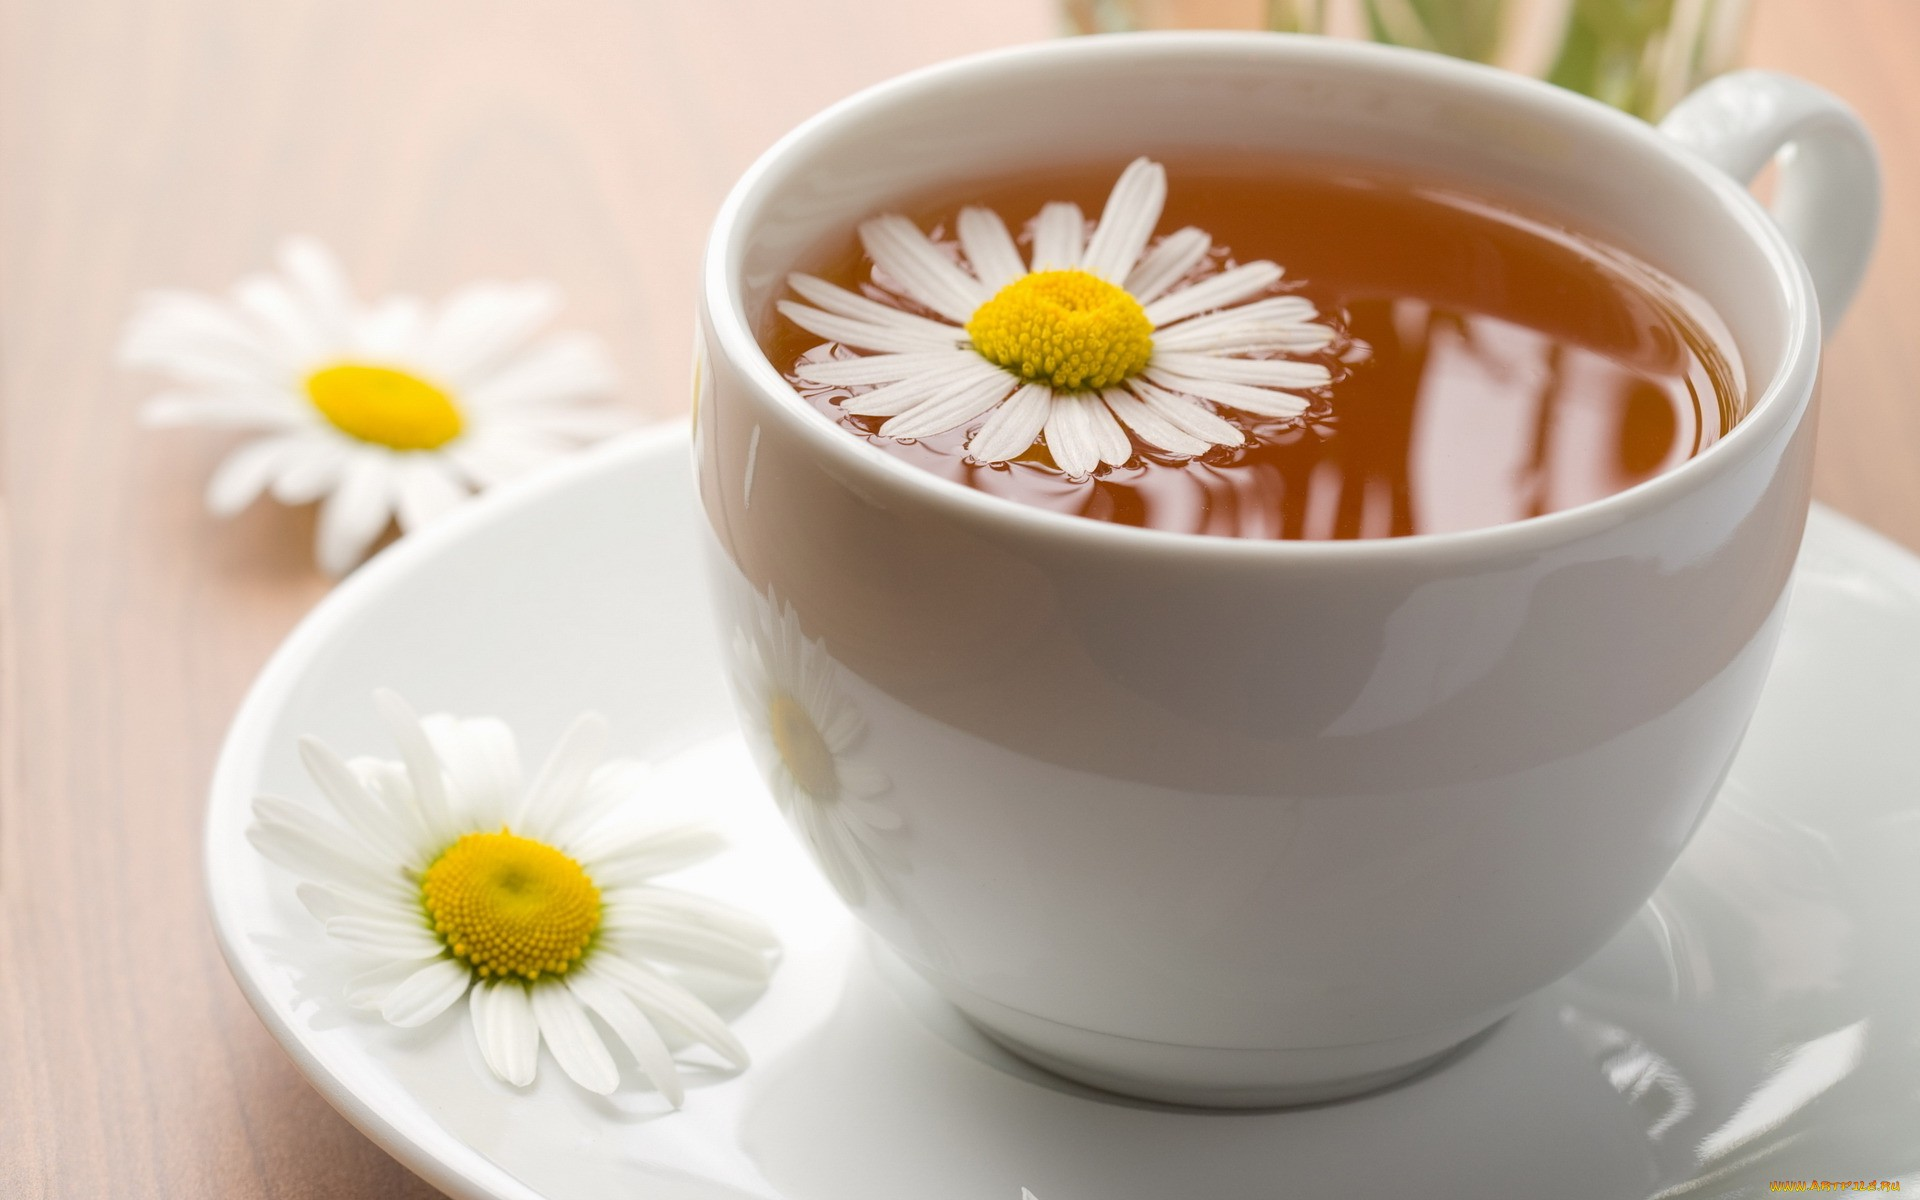 To set this flower tea cup as wallpaper background on your Desktop, SmartPhone, Tablet, Laptop, iphone, ipad click above to open in a new window in full ...